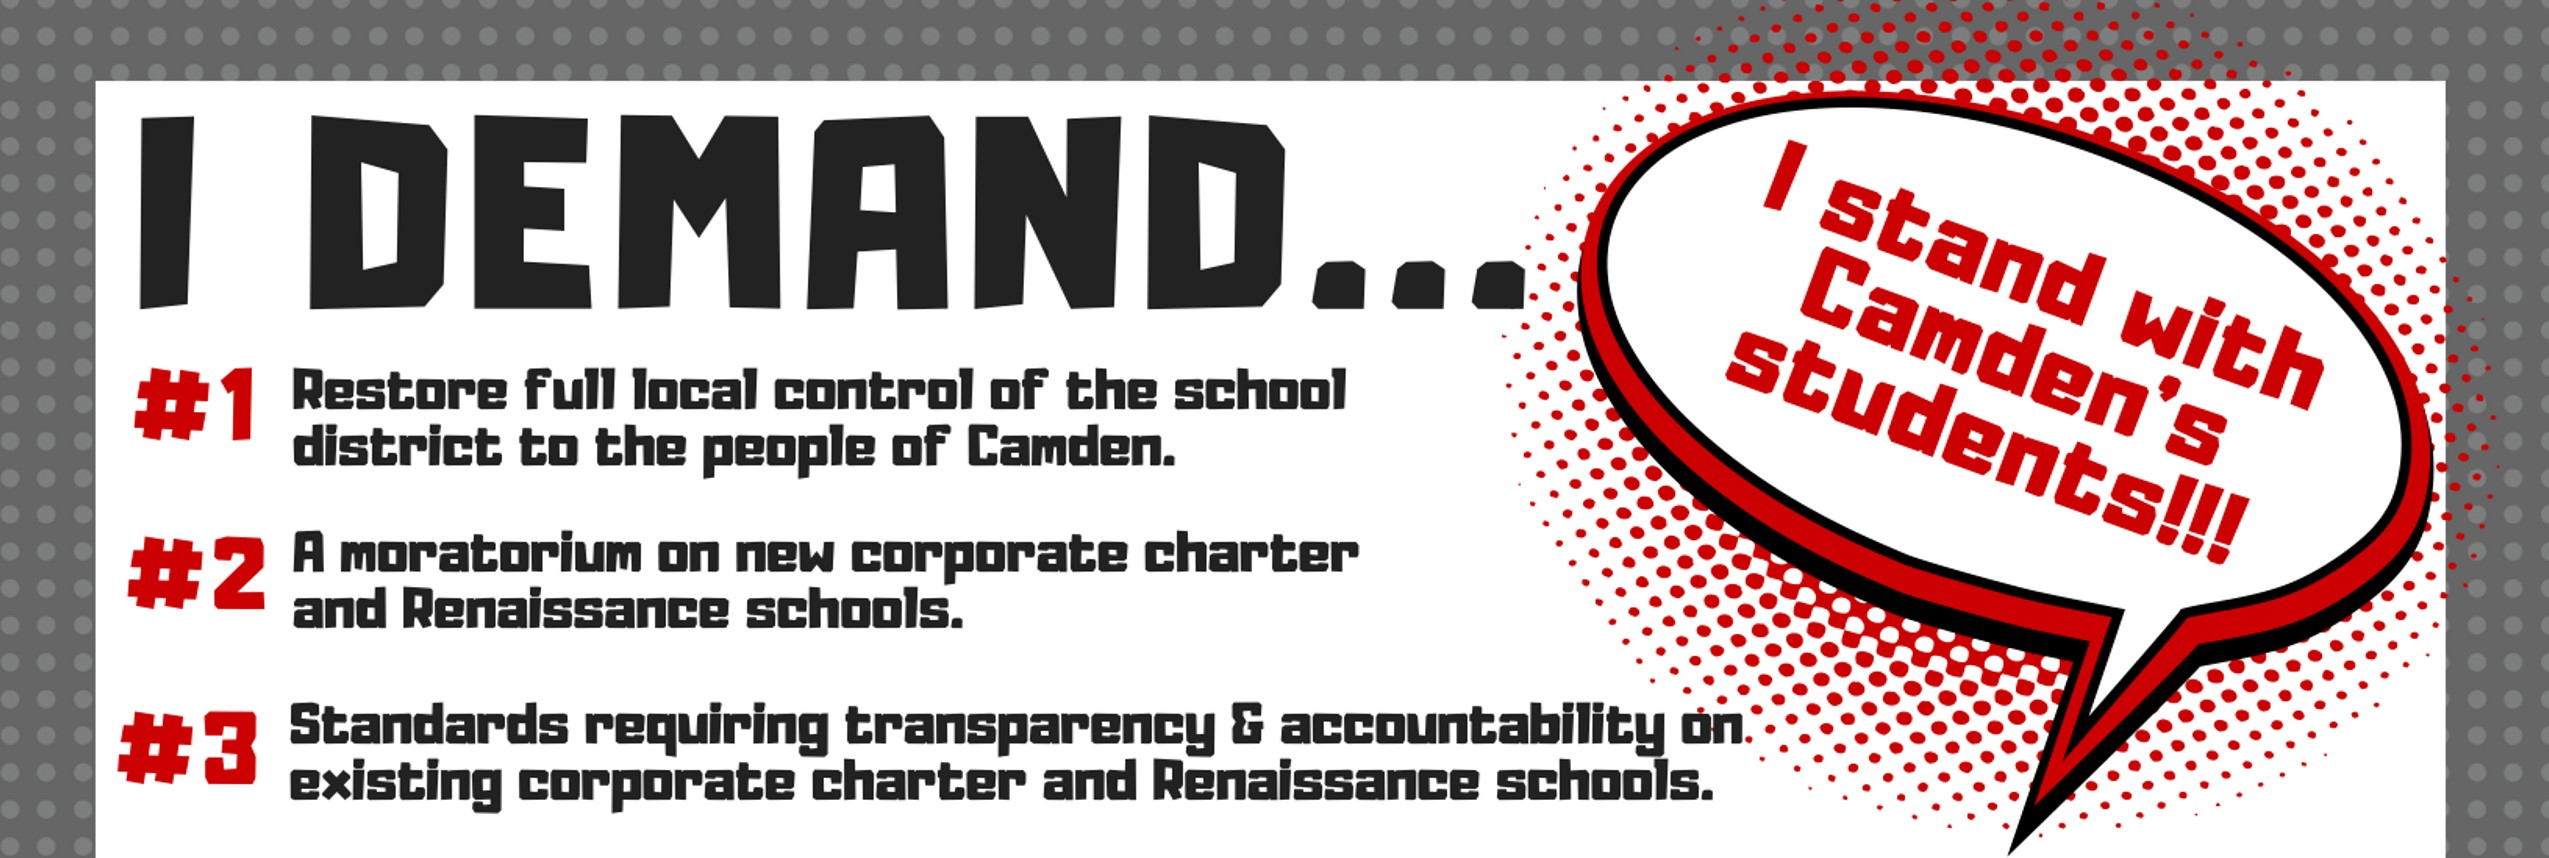 I_stand_with_Camden's_students!_I_suppport..._(1).jpg